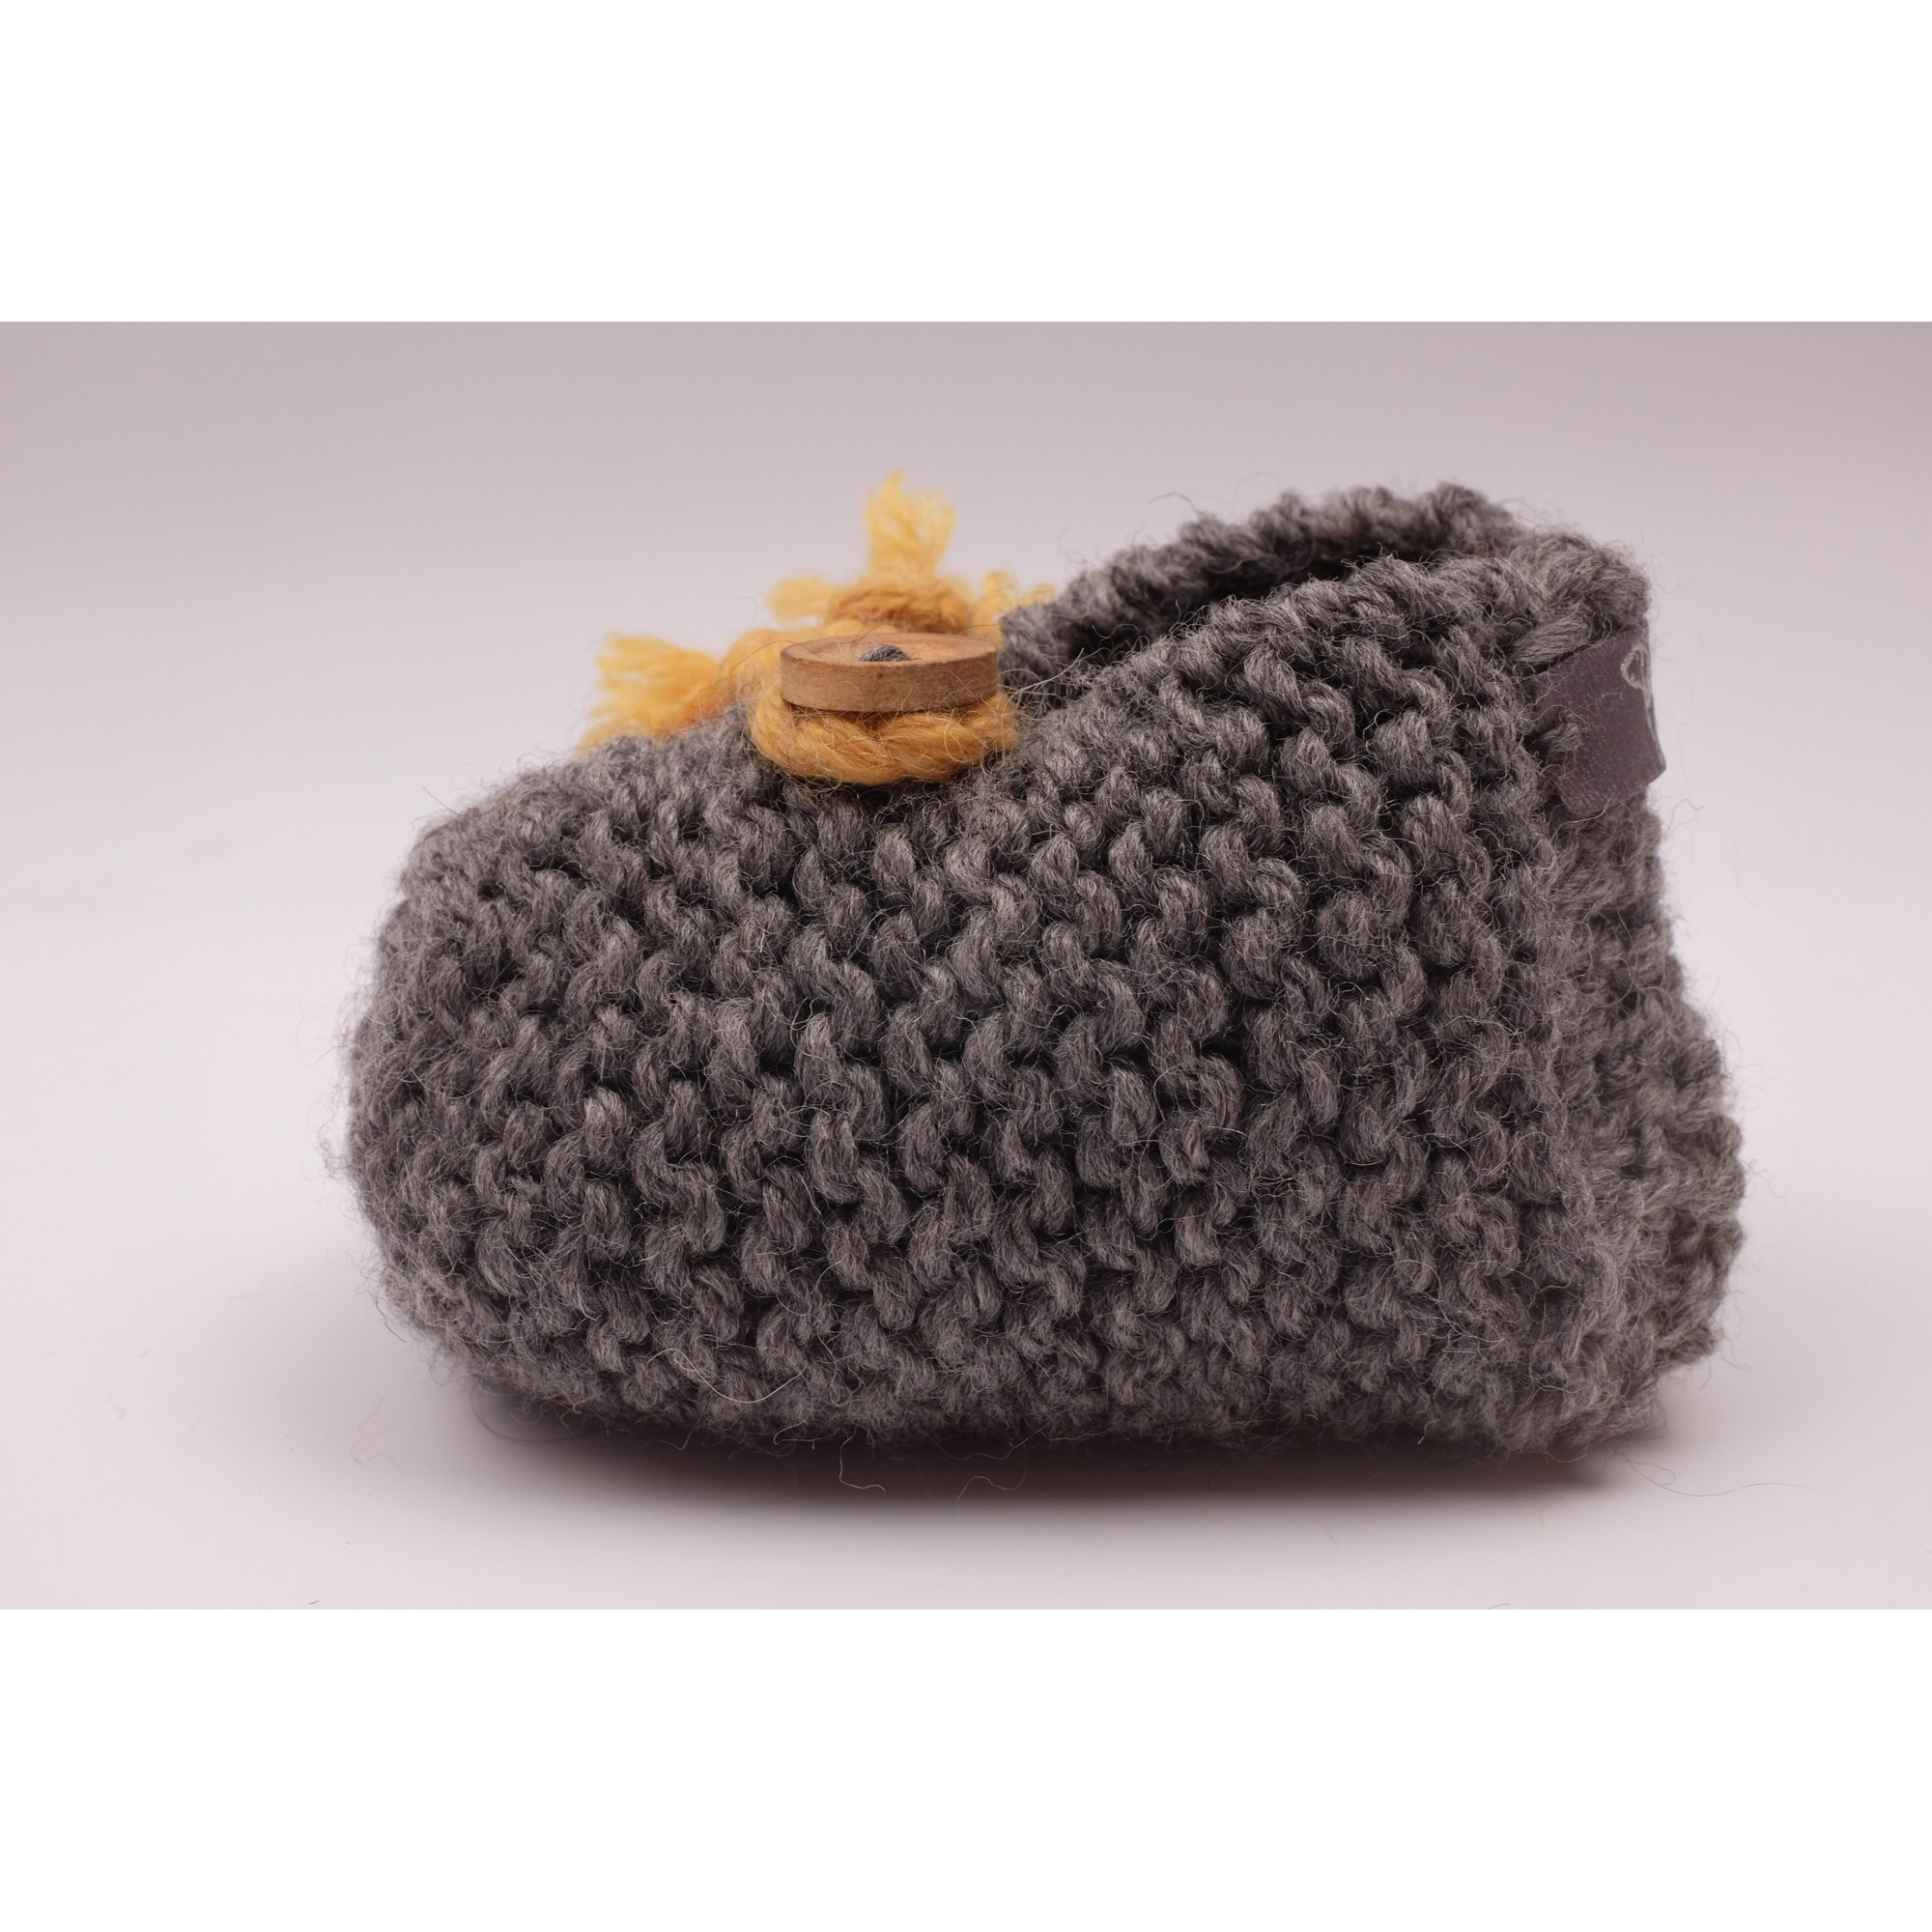 Joseph slippers anthracite and yellow baby side